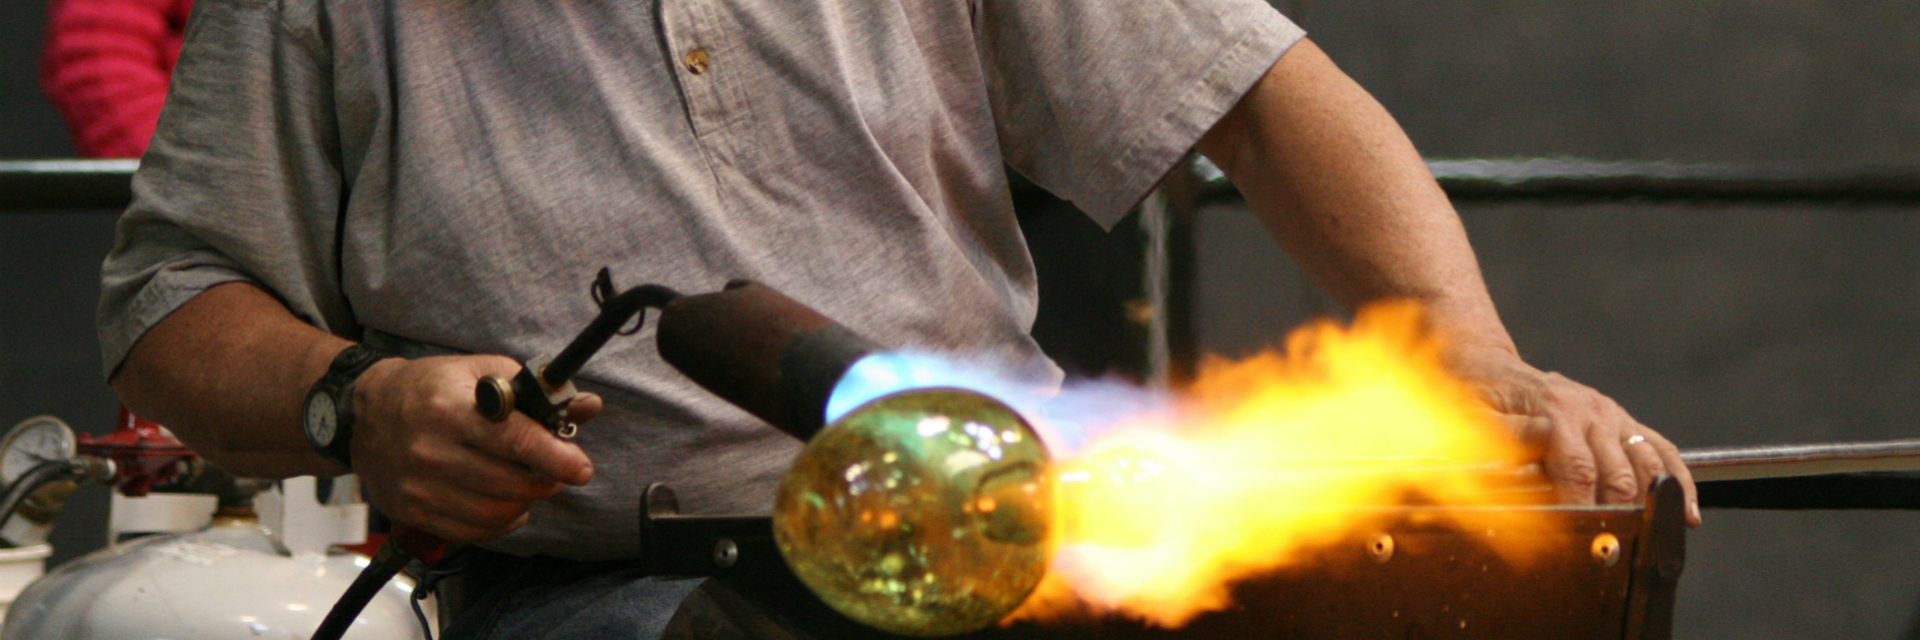 Glassblower-1920.jpg